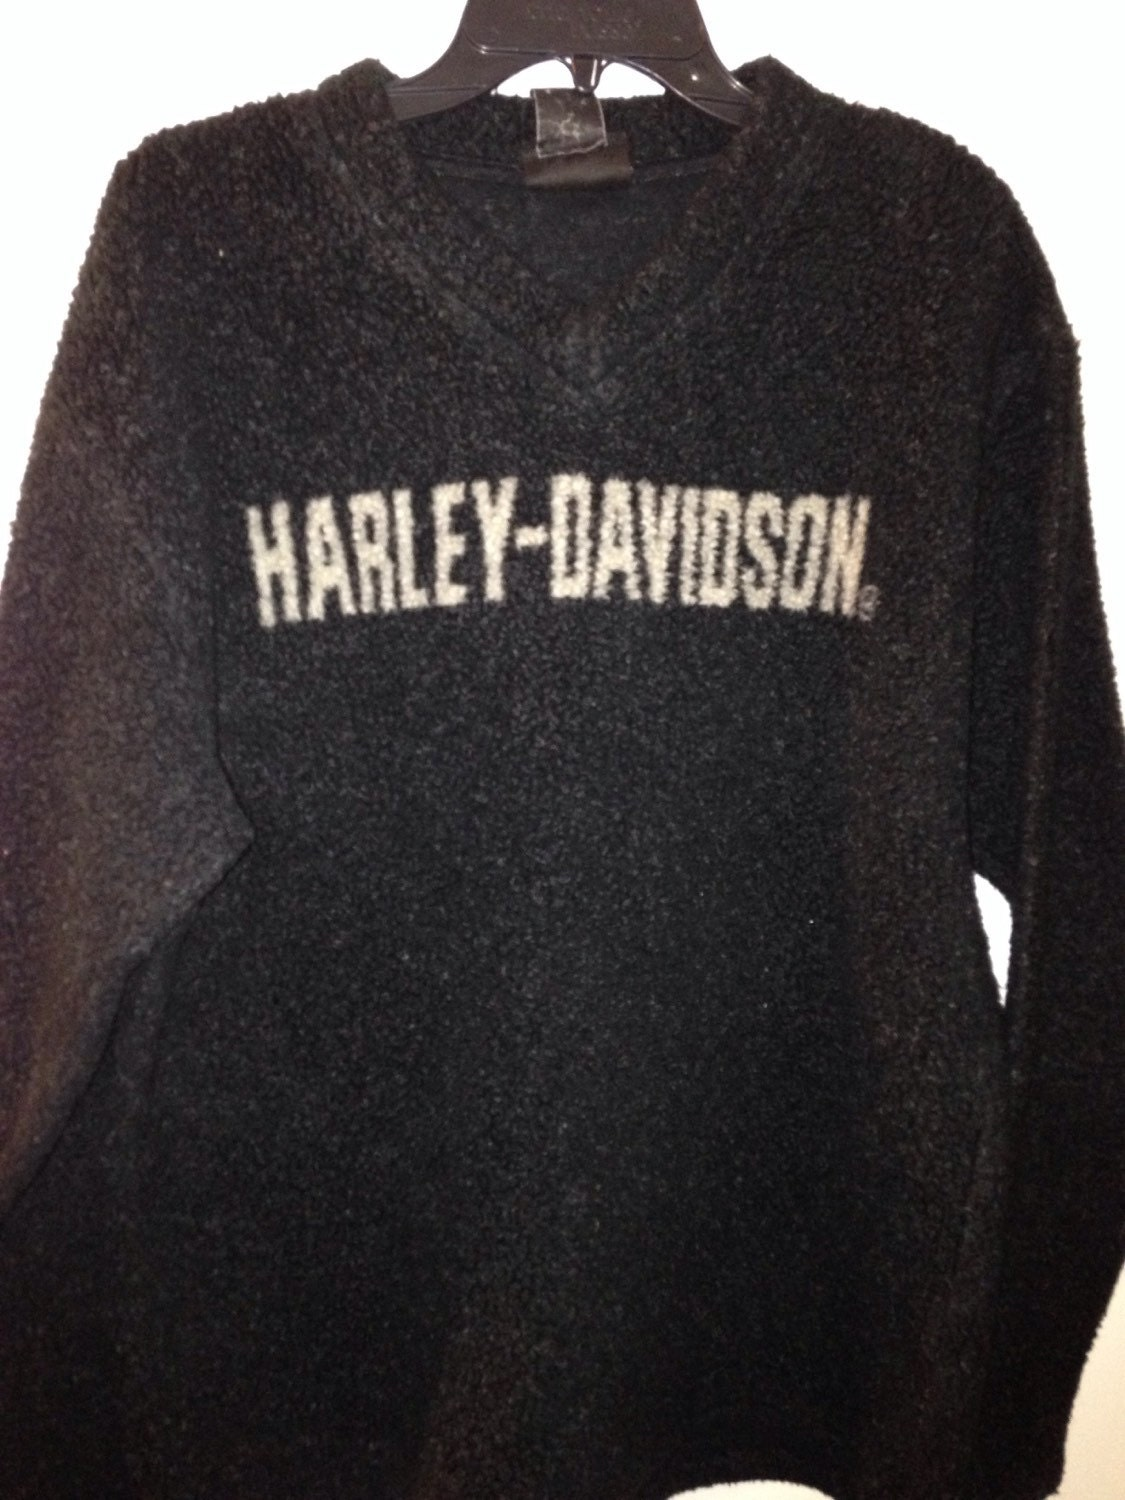 harley davidson sweater mens vintage harley fleece pullover. Black Bedroom Furniture Sets. Home Design Ideas